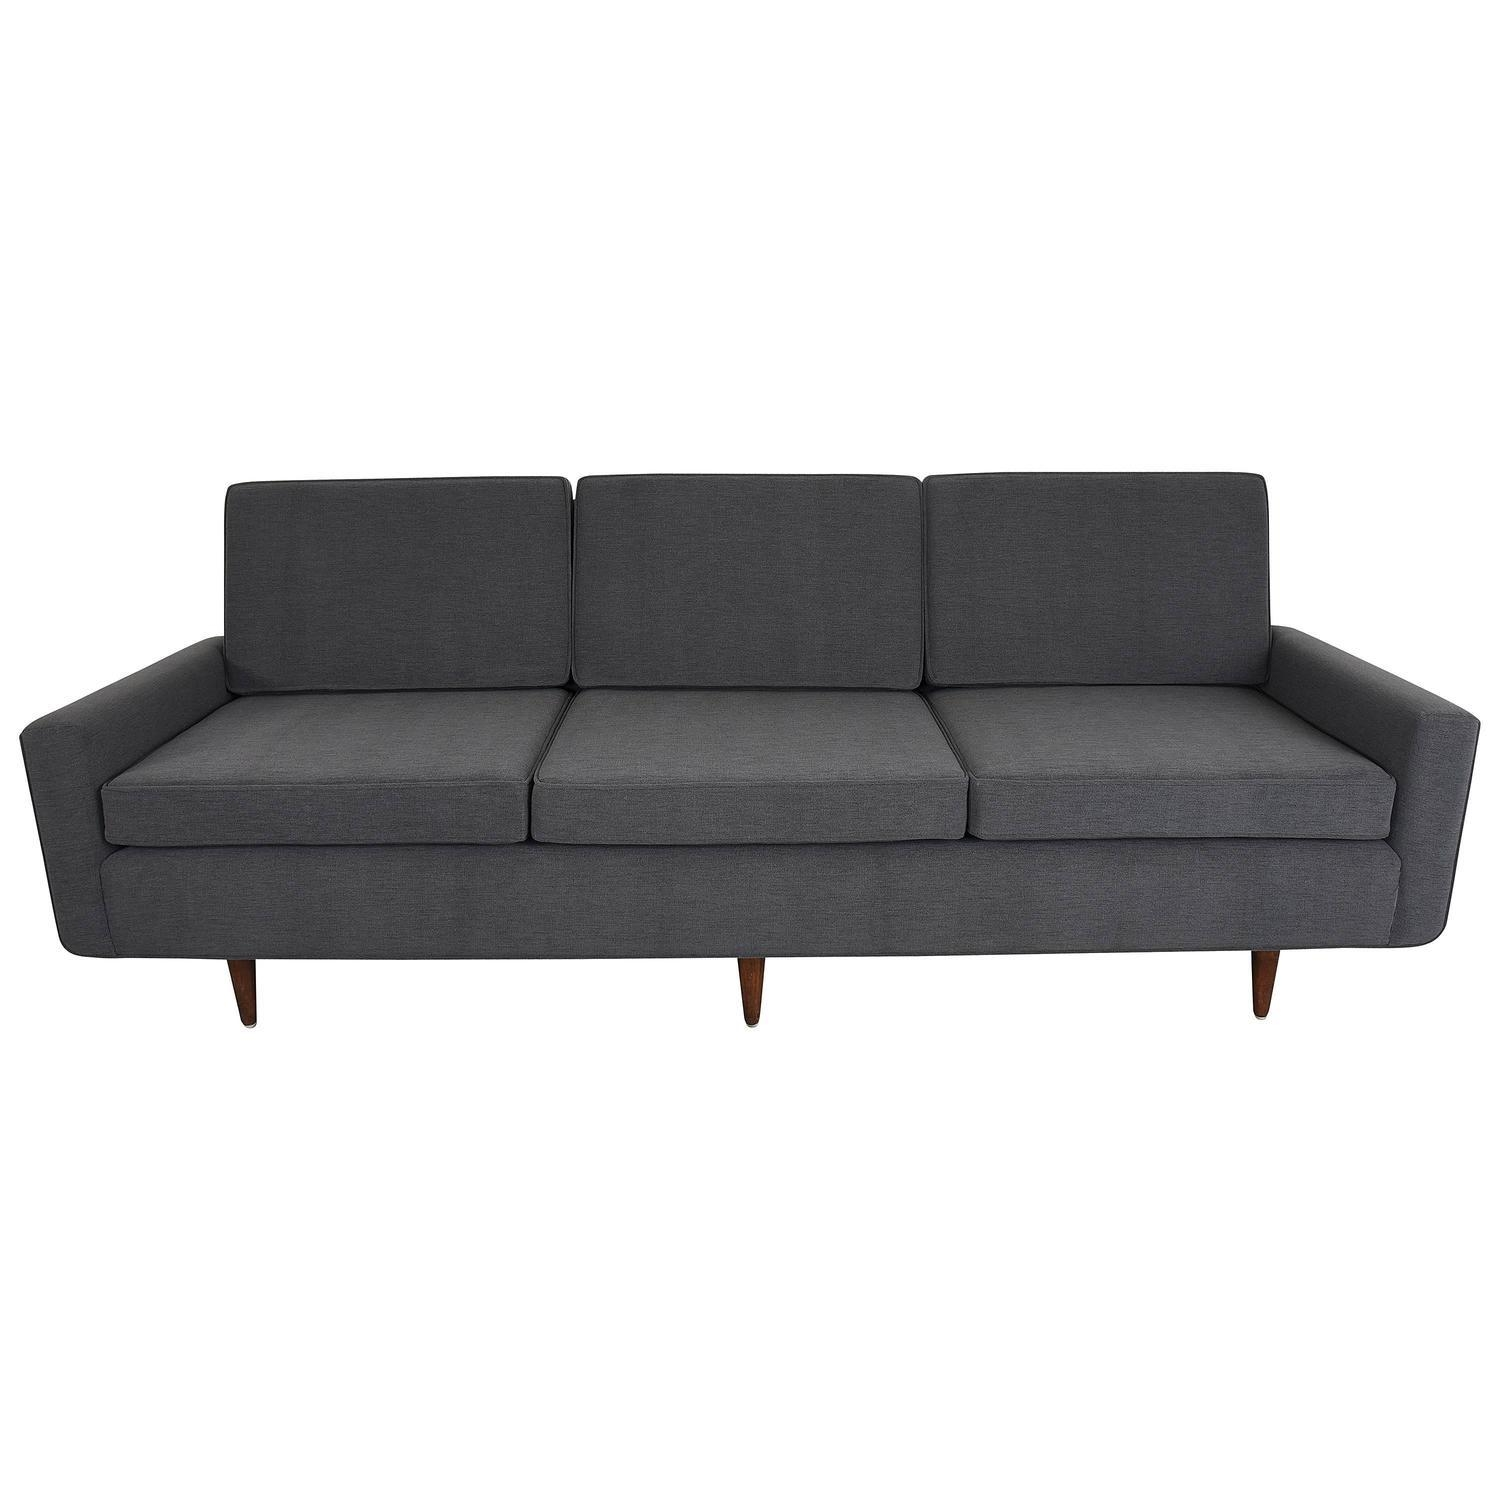 Florence Knoll Sofa Three Seat Sofa, Model 26, Pair Available For With Florence Knoll Sofas (View 3 of 20)